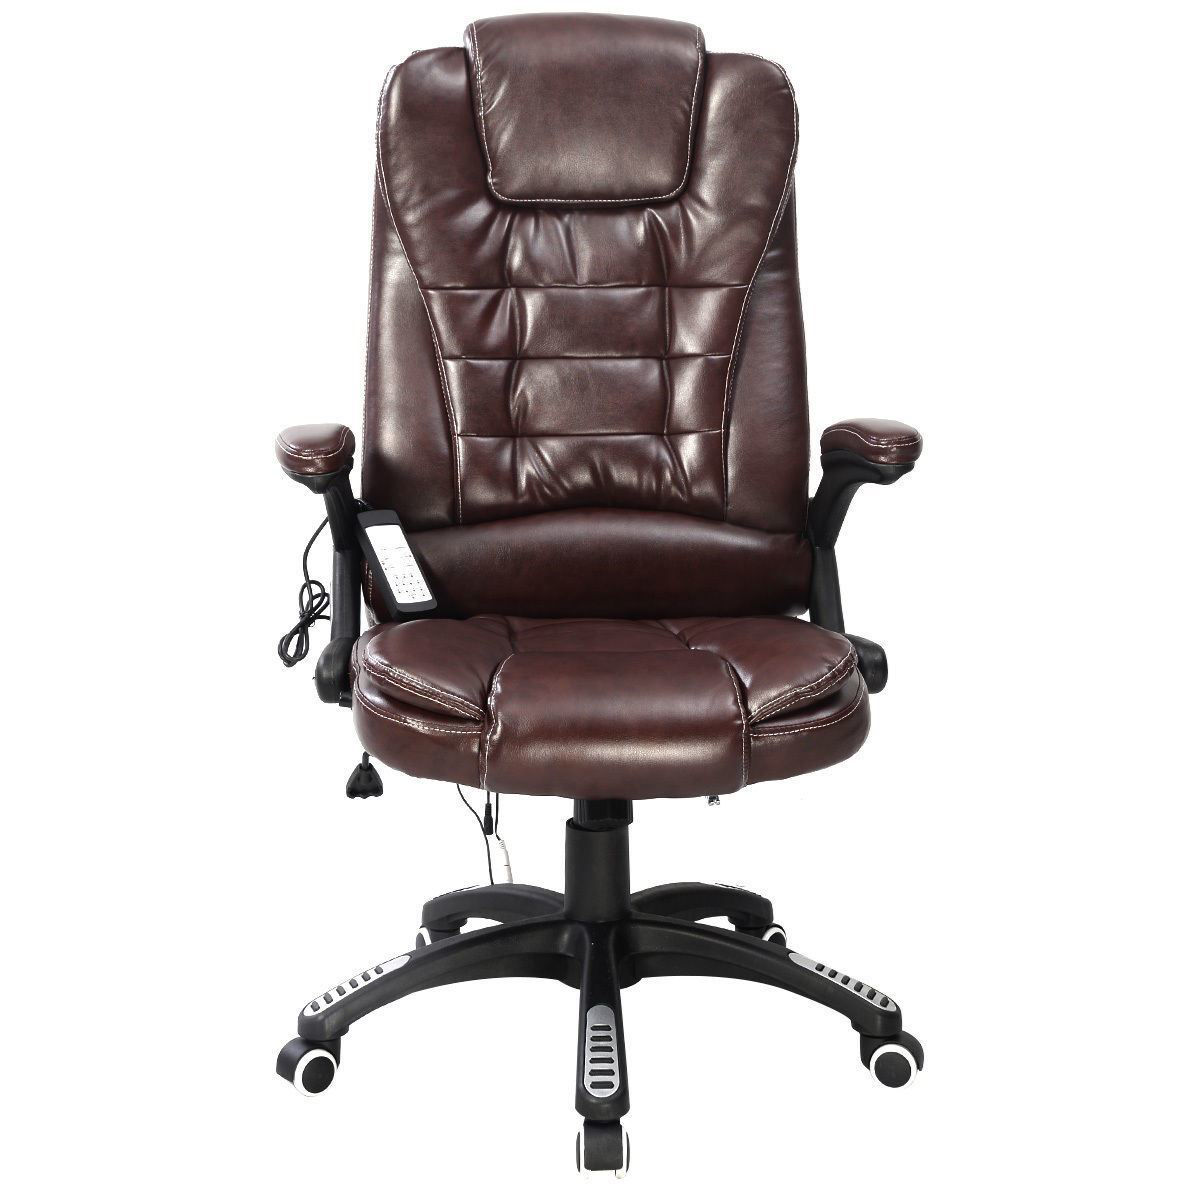 Picture of Executive Ergonomic Massage Vibrating Office Chair